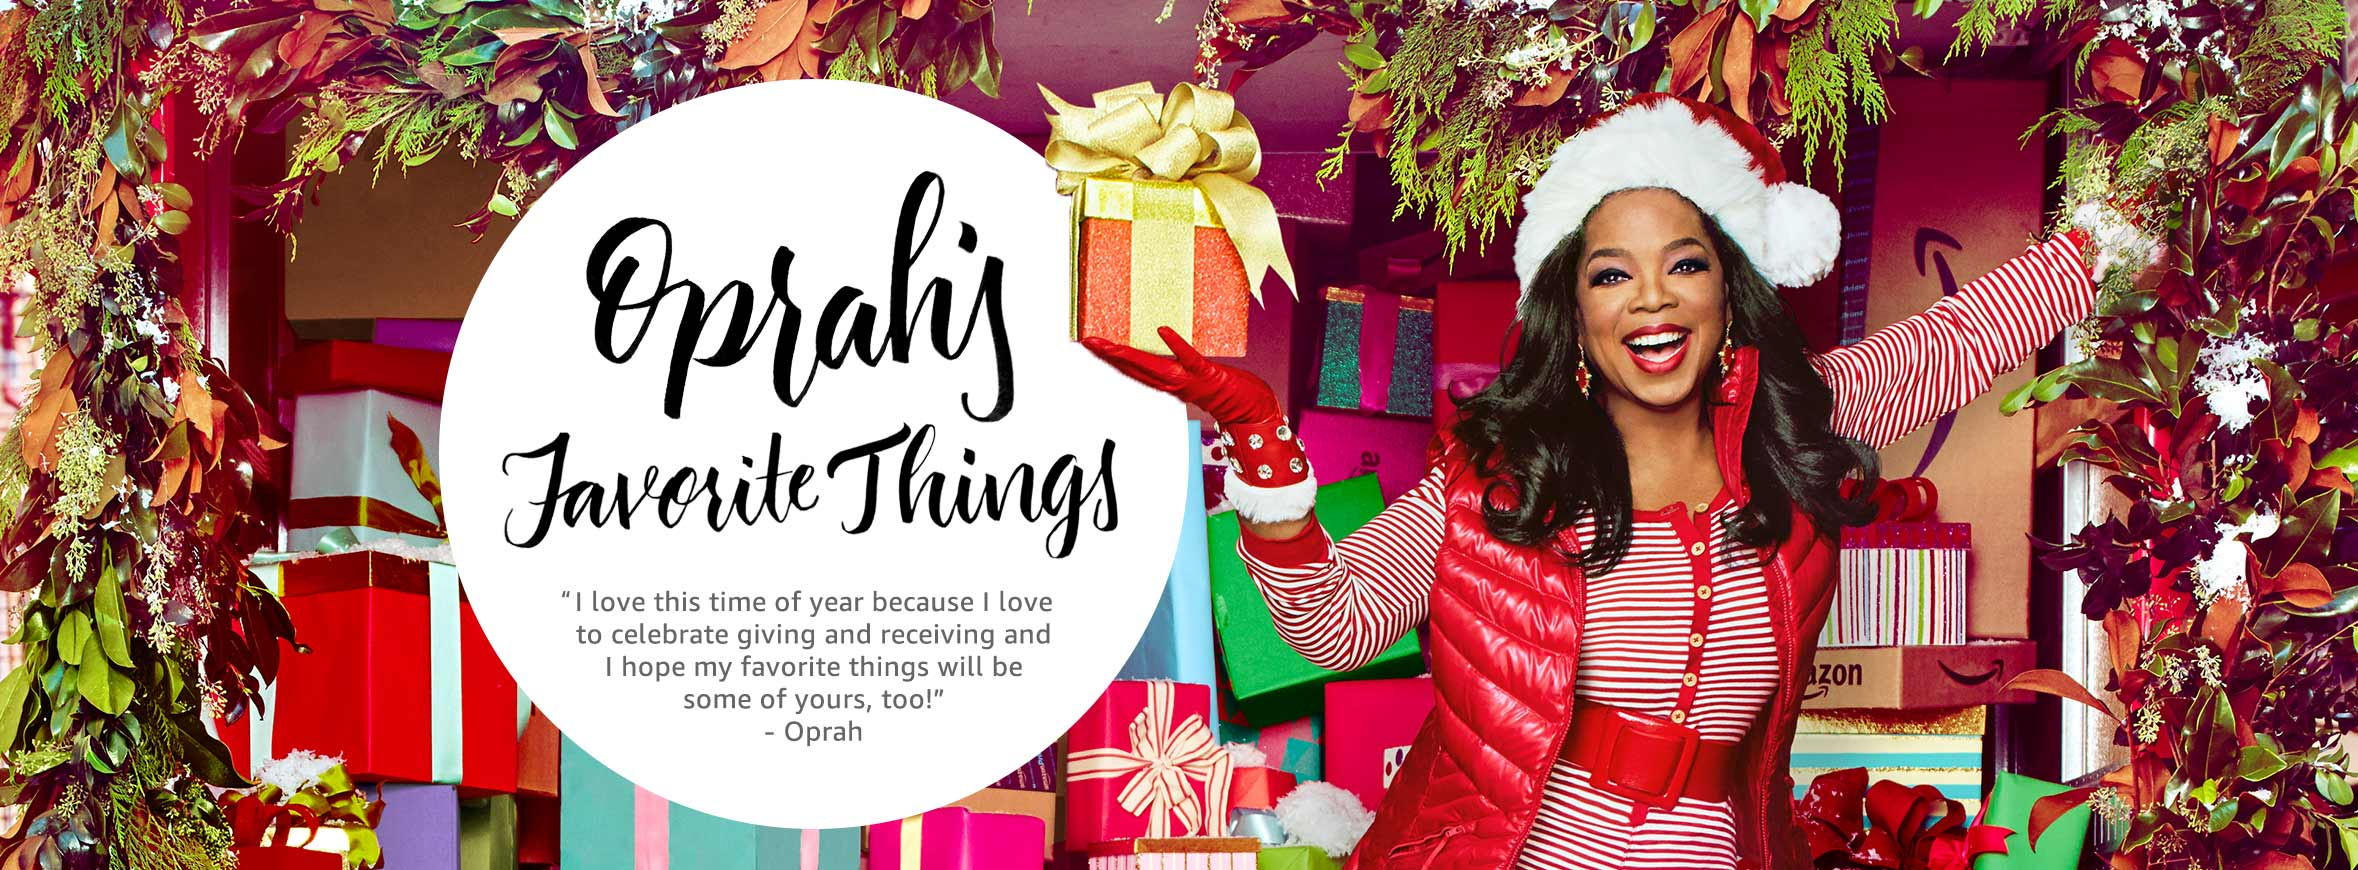 10 must have items from Oprah's Favorite Things 2016 – Estrella